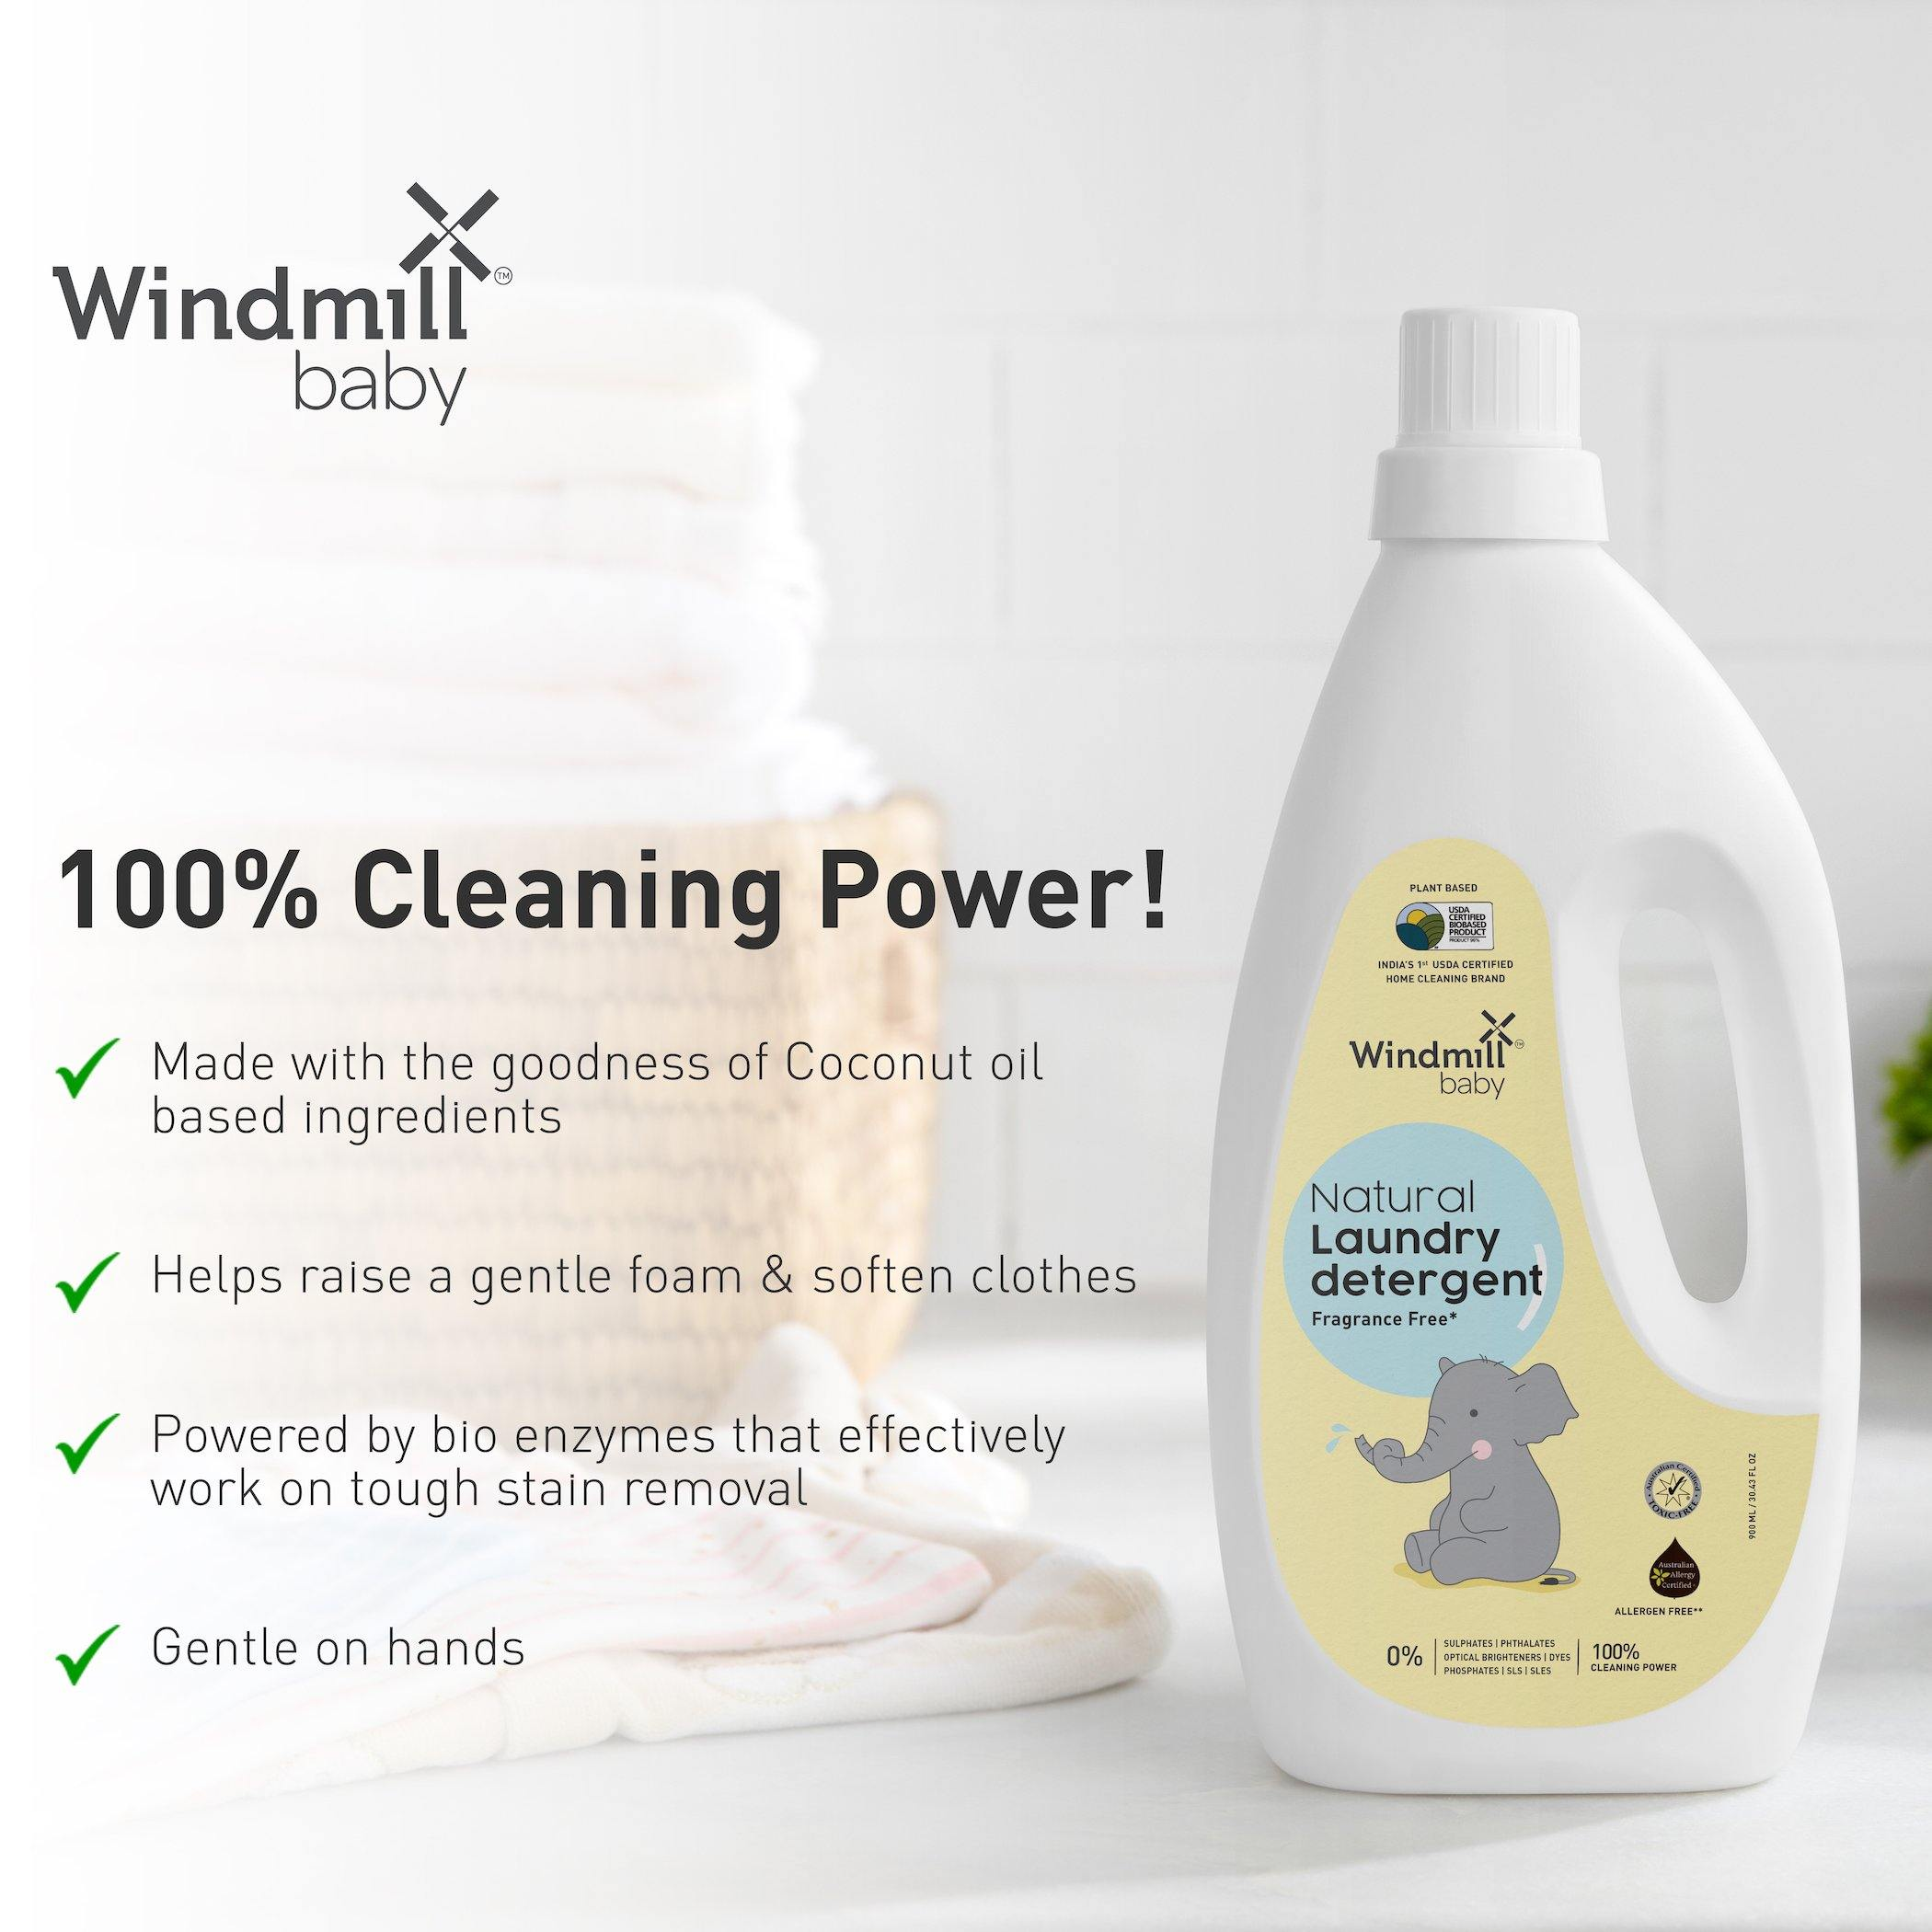 Natural Laundry Detergent Fragrance Free - Windmill Baby